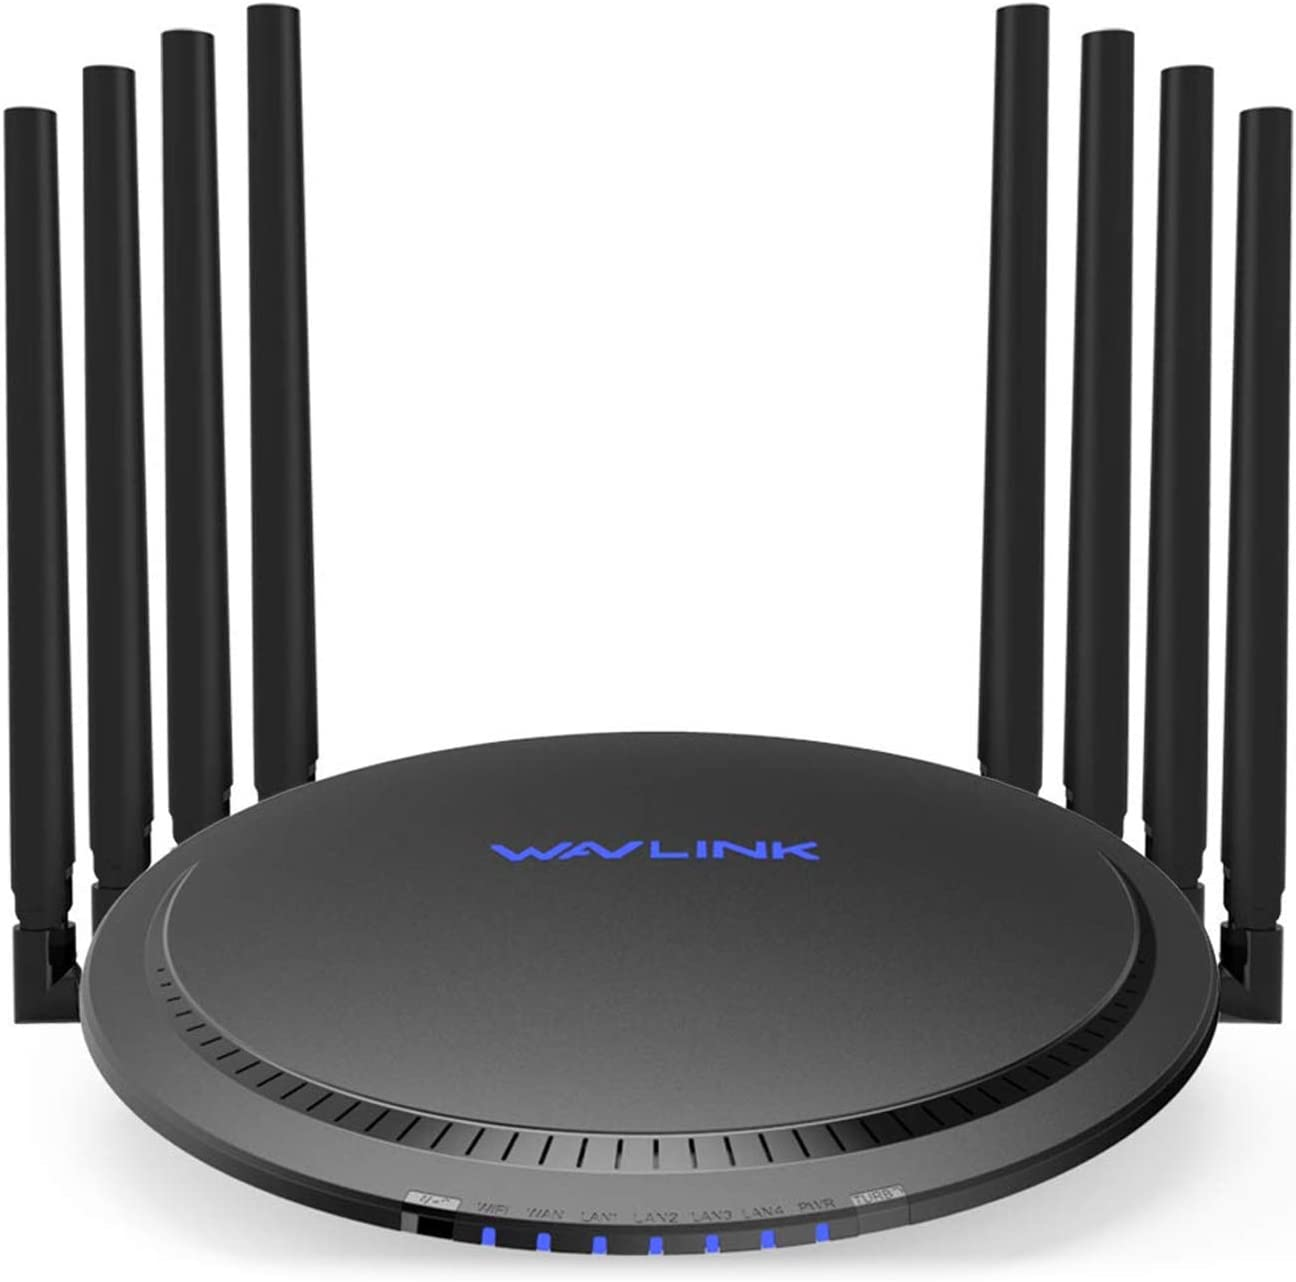 WAVLINK Gigabit WiFi Router AC3000 Wireless Tri-Band Wi-Fi Router High Speed Wireless Router,4K Streaming and Gaming with USB 3.0 Ports Wireless Internet Router,Parental Control&QoS